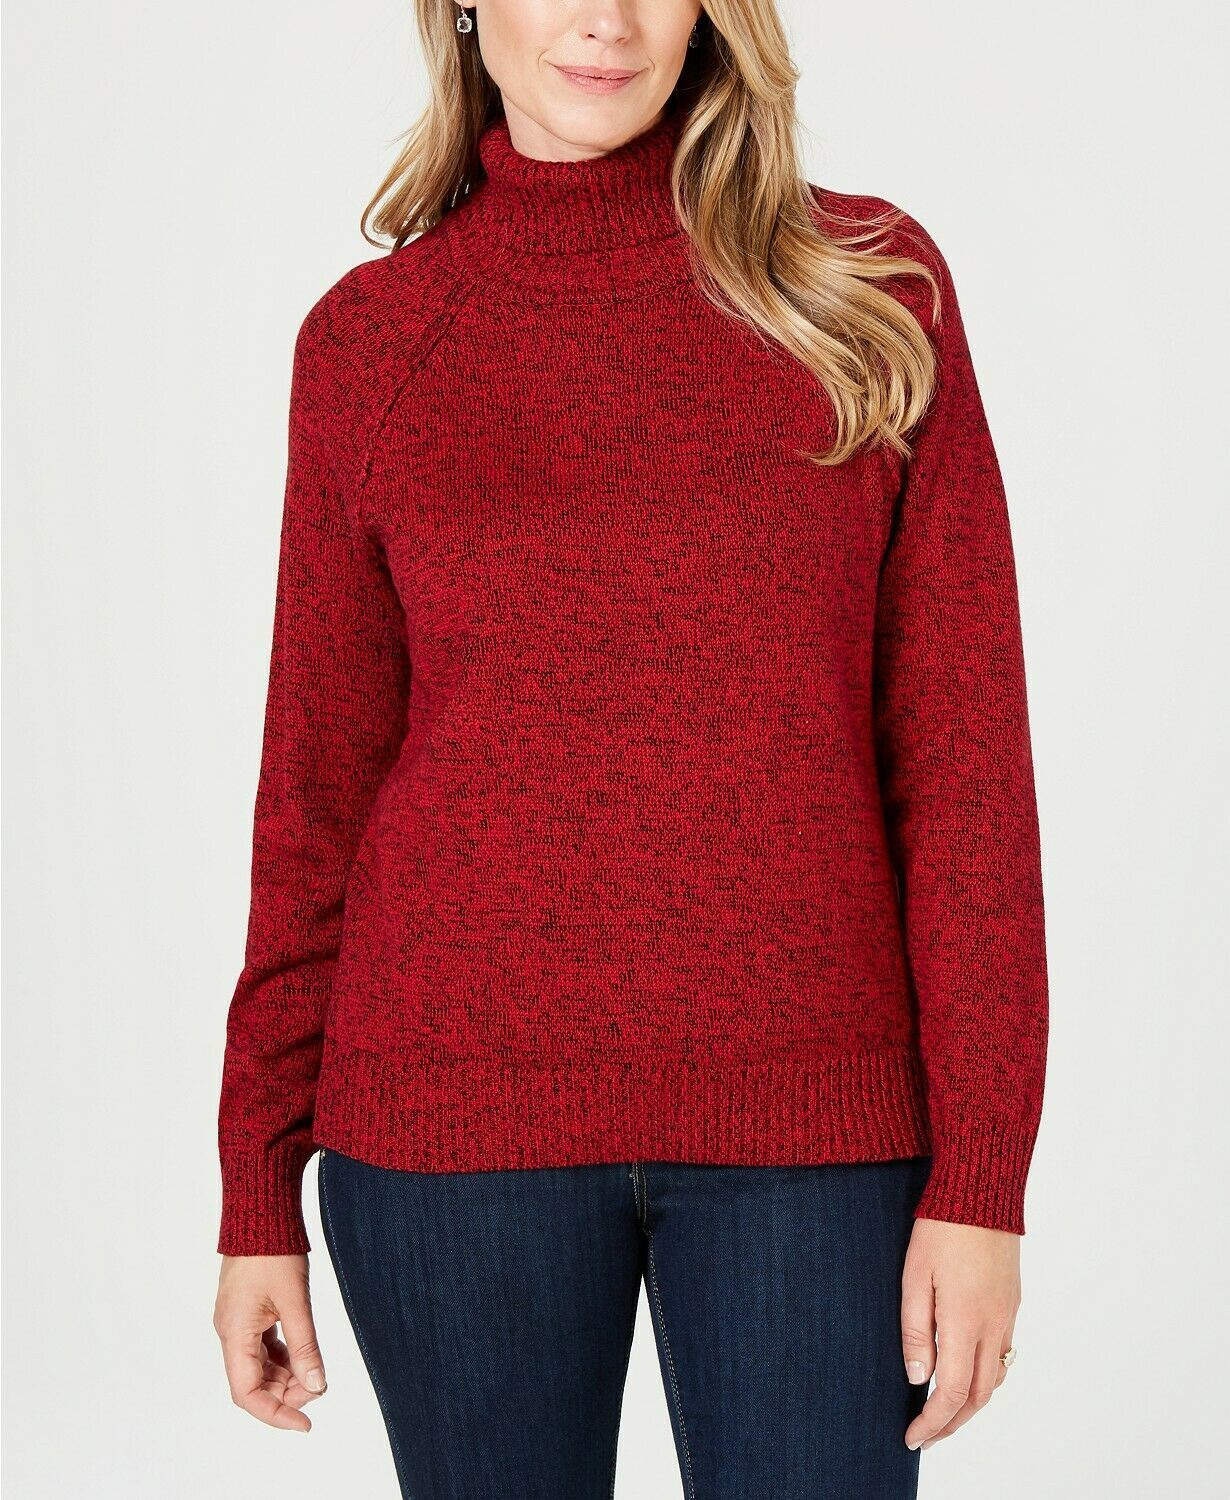 Primary image for Karen Scott Women's Red Amore Marl Ribbed-Knit Turtleneck Sweater Size Large $46